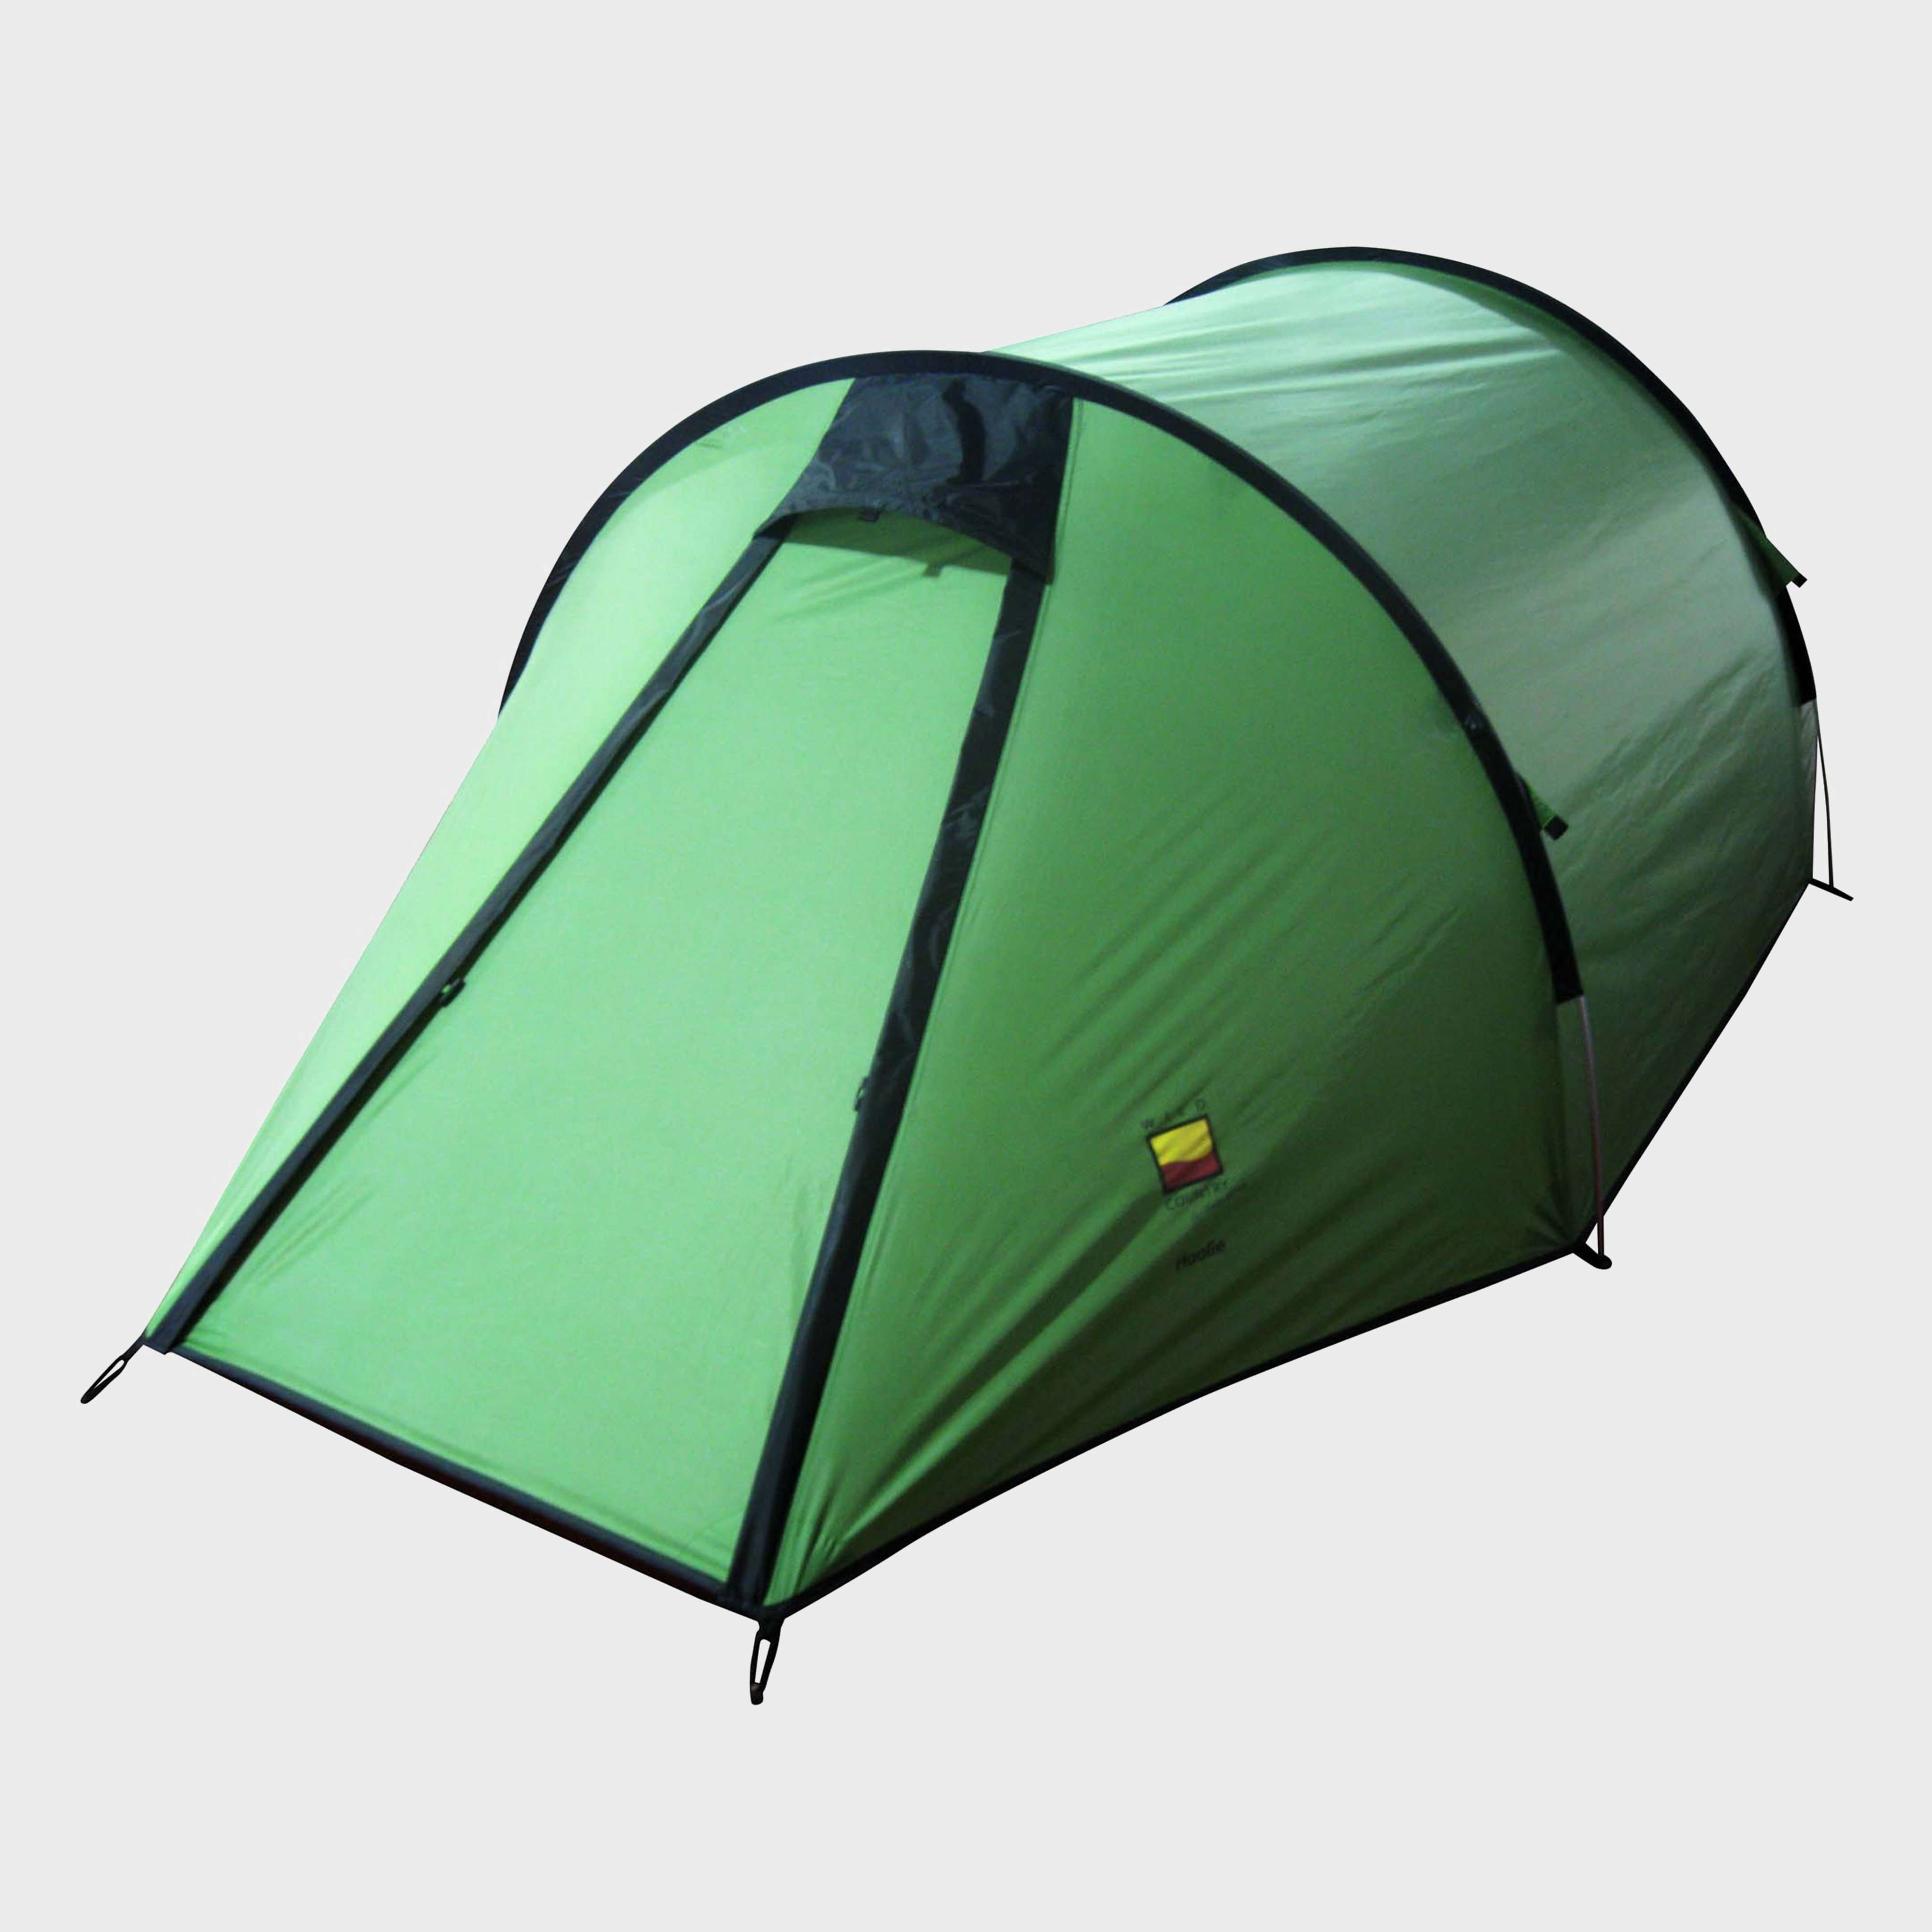 WILD COUNTRY Wild Country Hoolie 3 Tent